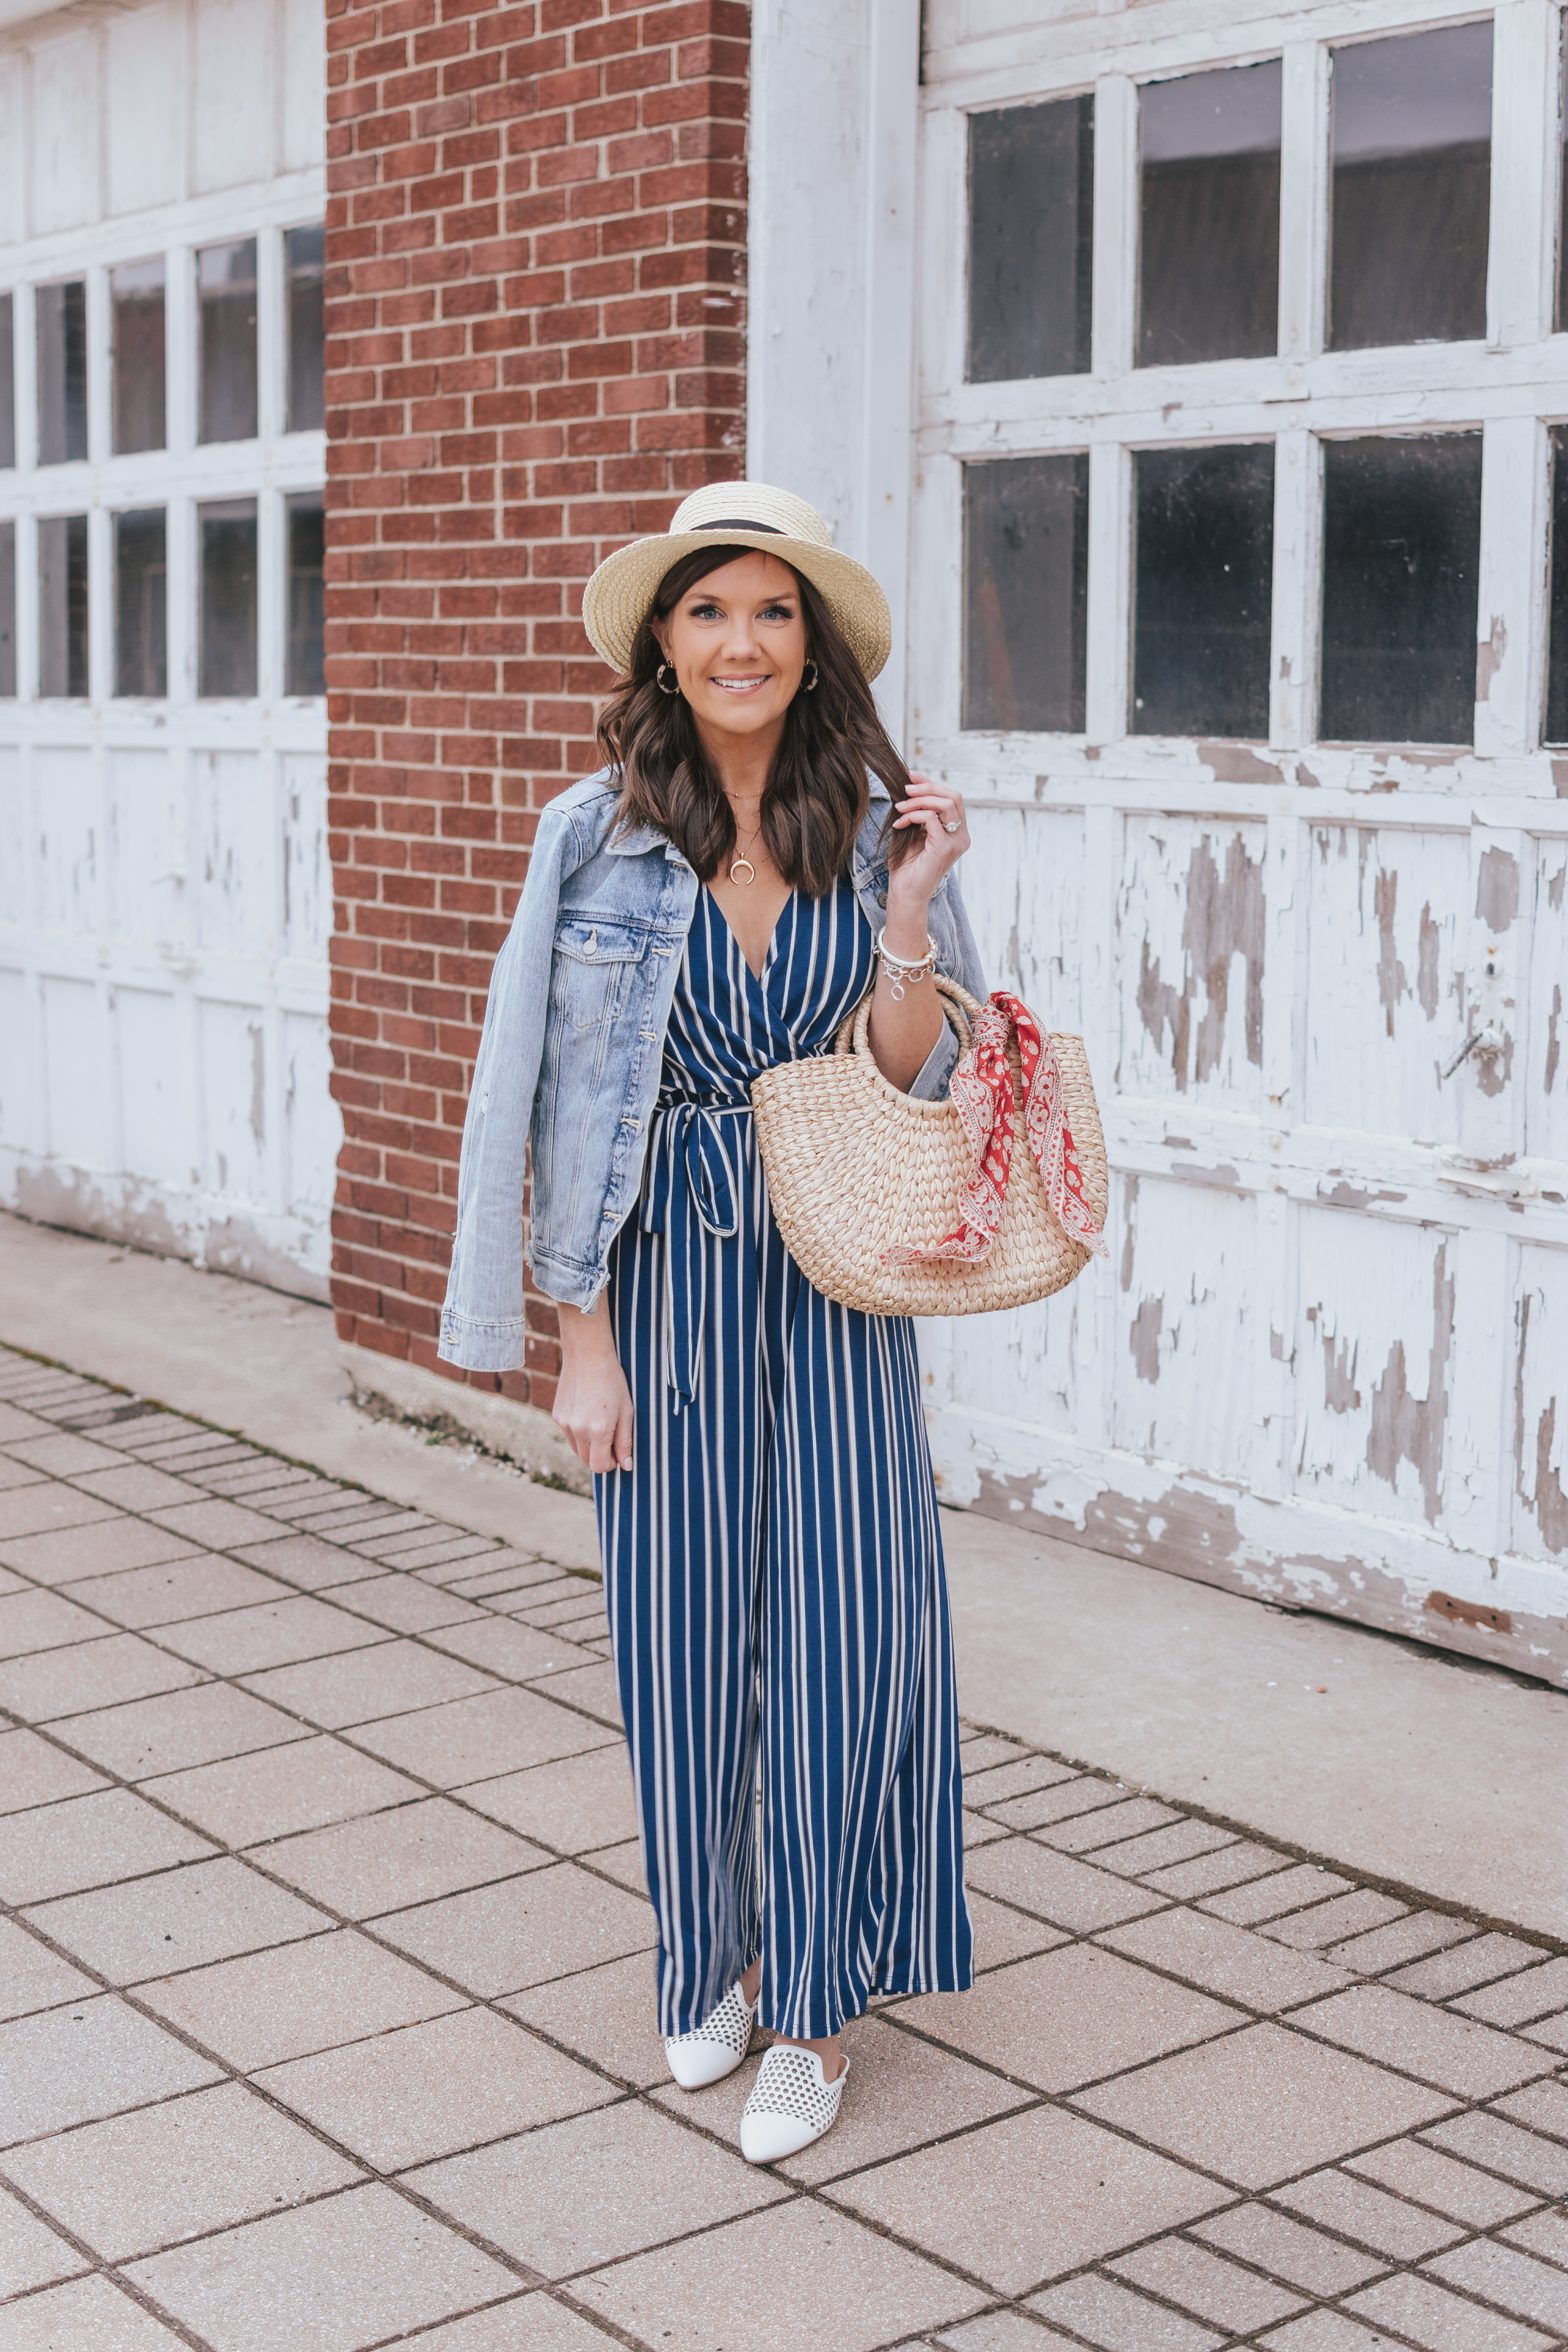 Styling a Wide Leg Jumpsuit, spring fashion at Walmart fashion finds, navy striped jumpsuit, sam edelman dupes, affordable fashion, vacation outfit